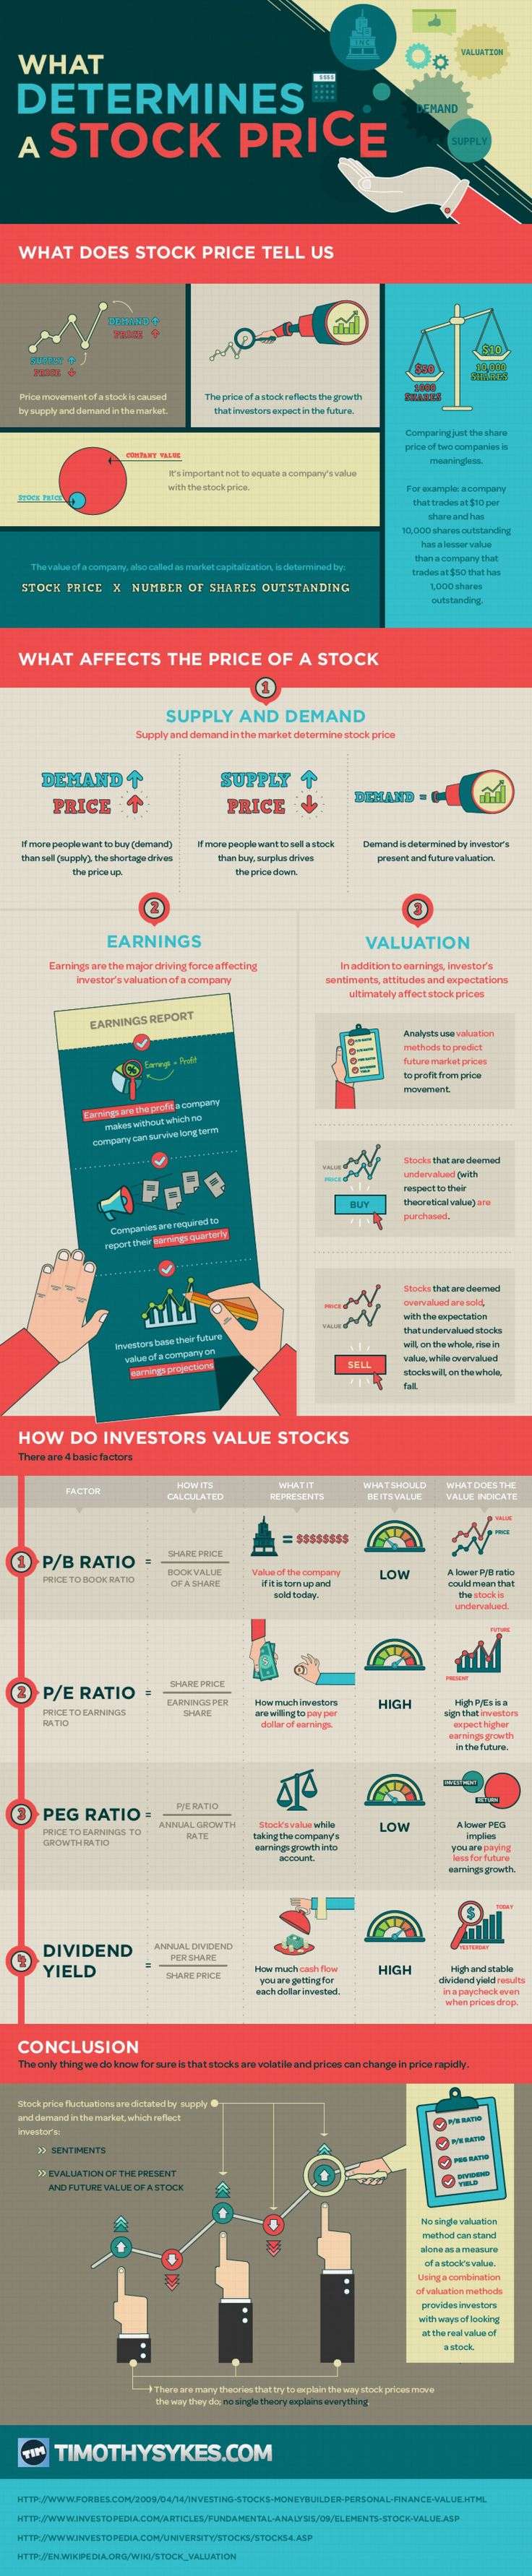 What Determines a Stock Price?